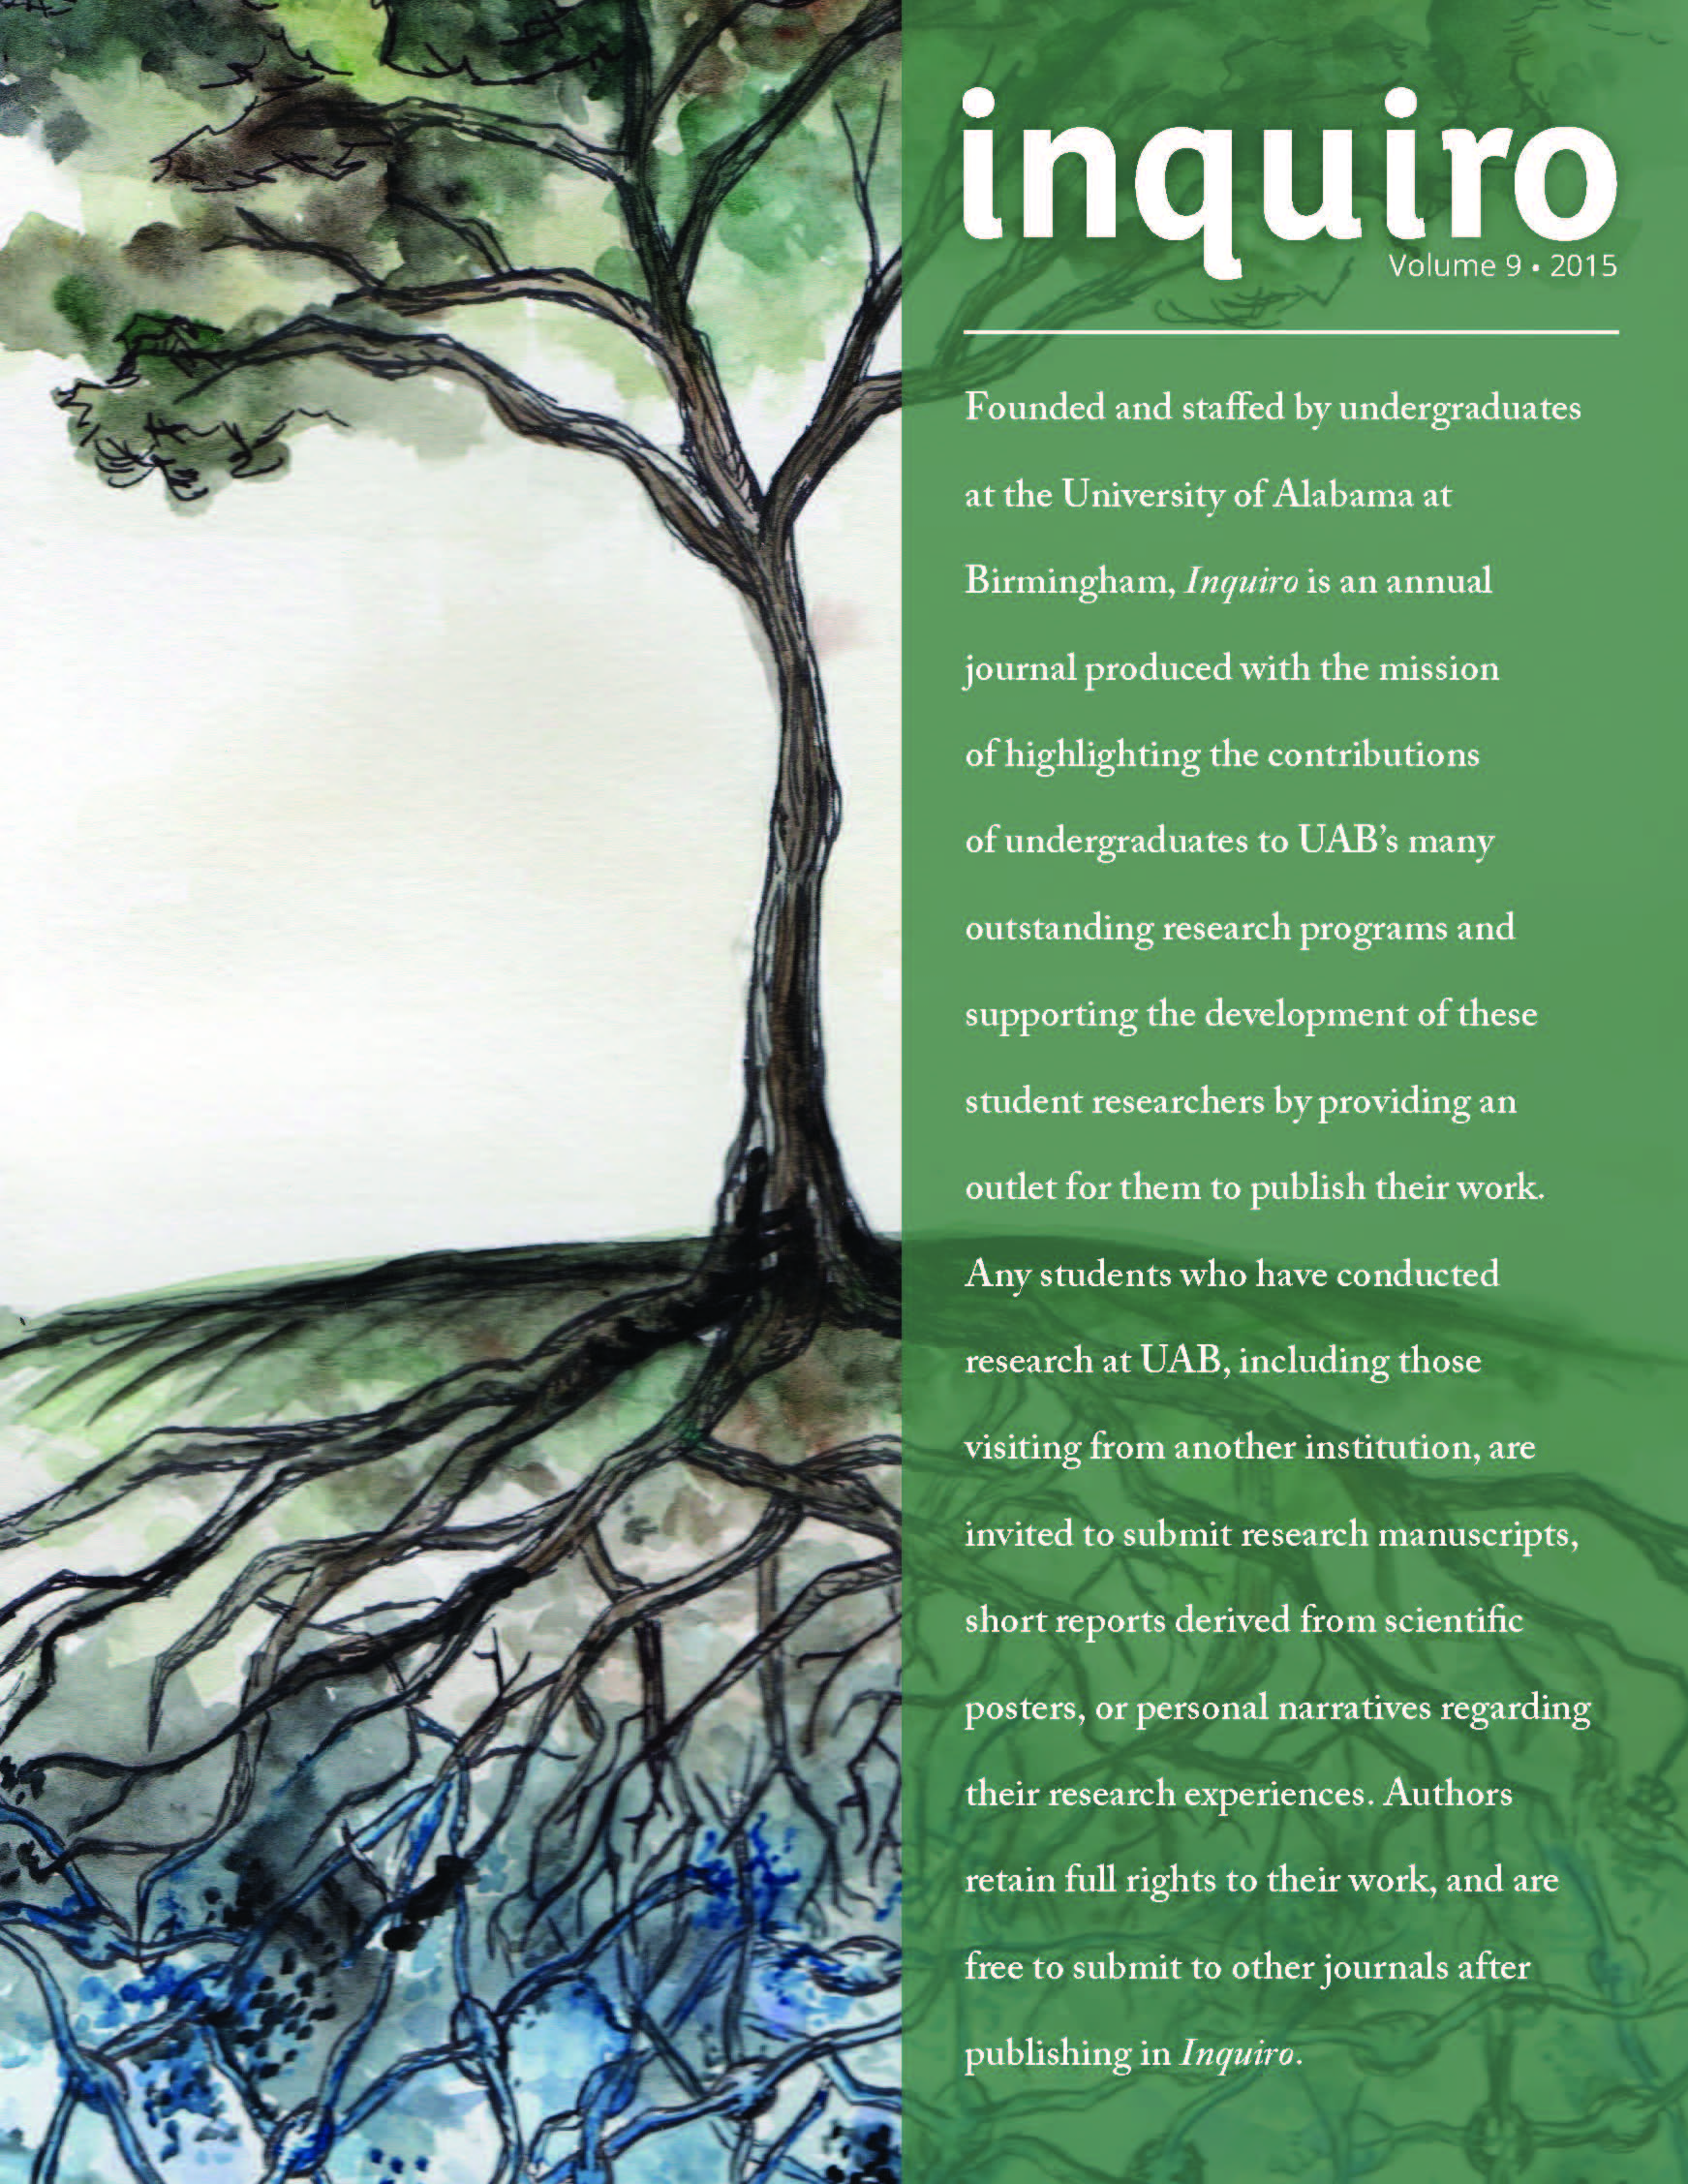 Watercolor tree with root system and about statement from inside cover of 2015 issue of Inquiro